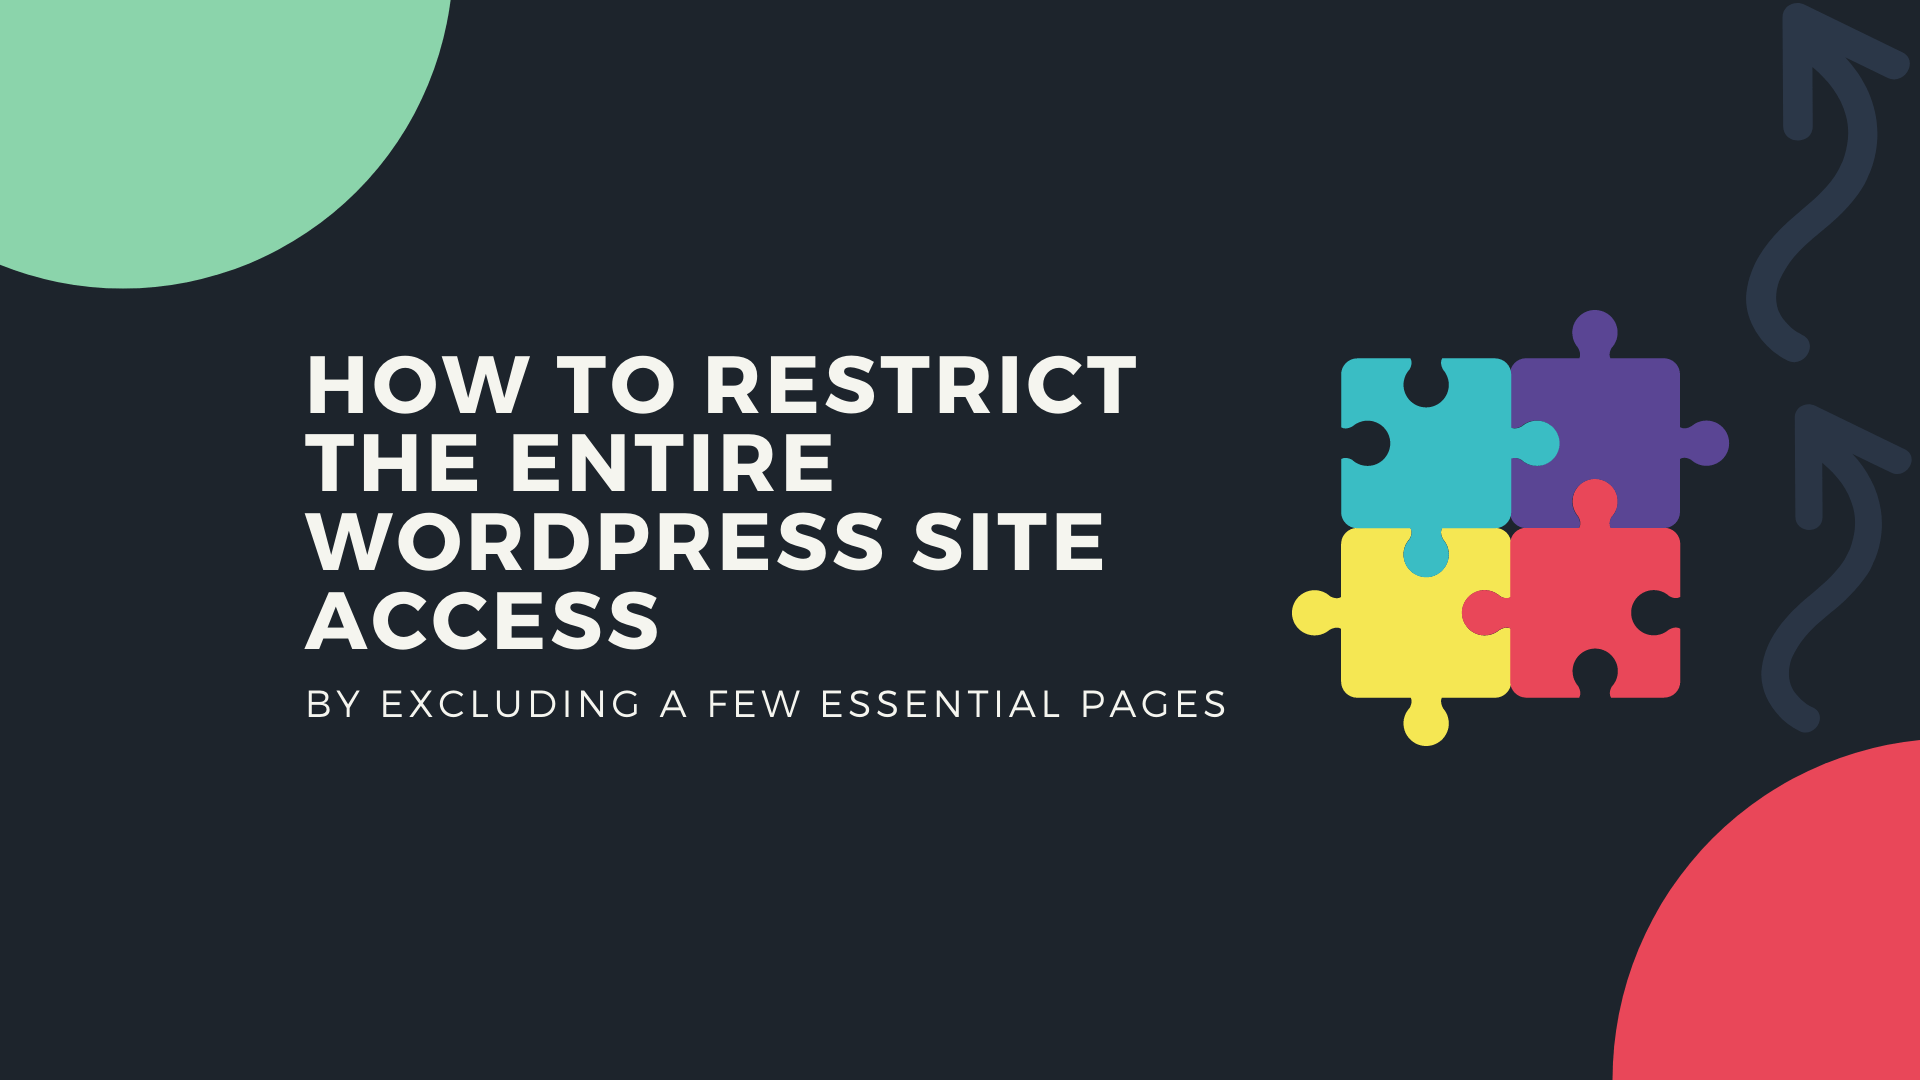 How to restrict the entire WordPress site by excluding a few essential pages